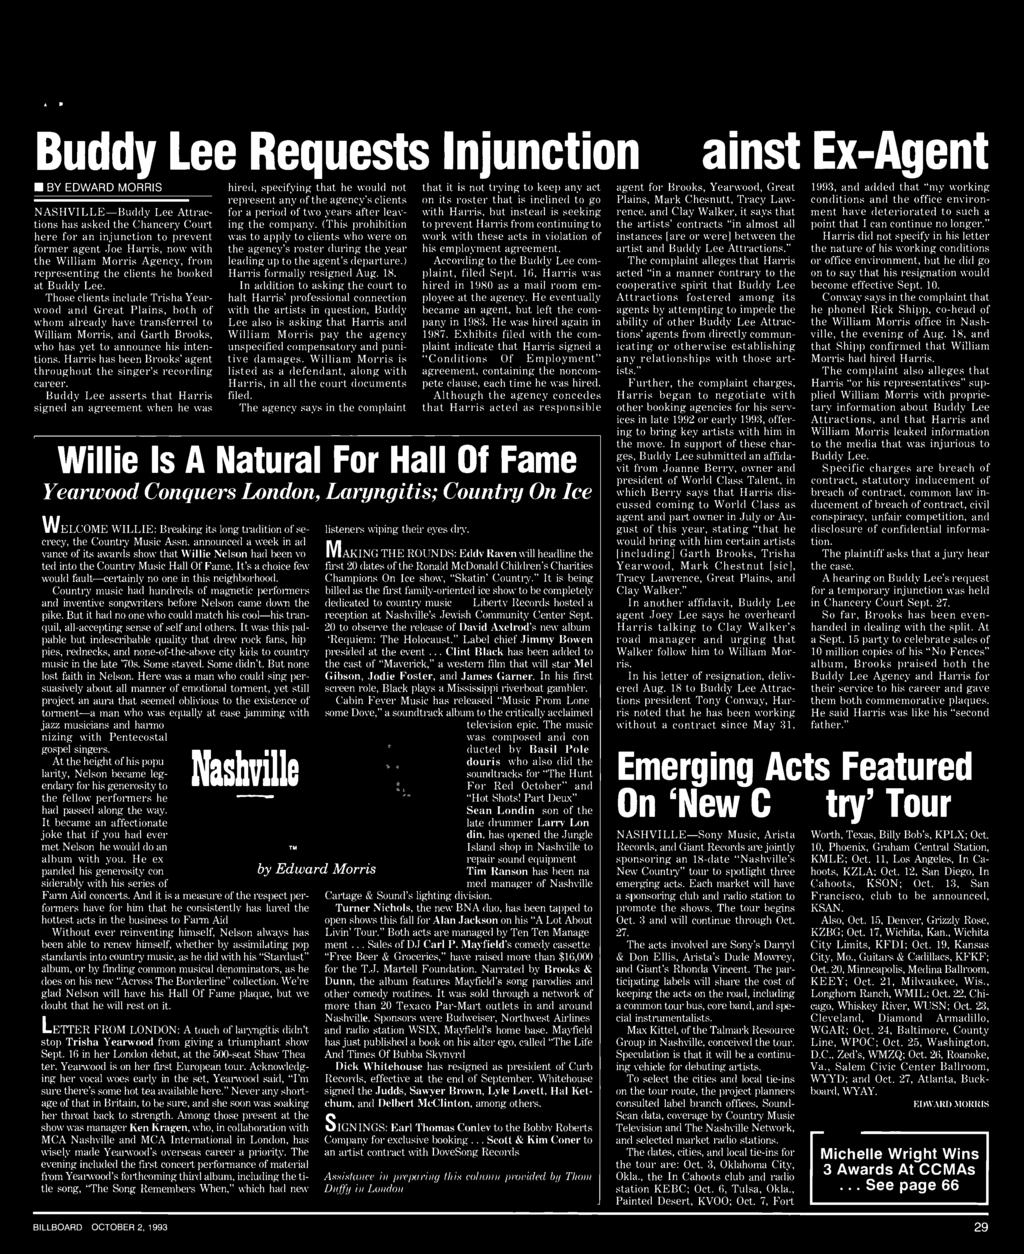 ARTISTS & MUSIC Buddy Lee Requests Injunction Against Ex -Agent BY EDWARD MORRIS NASHVILLE -Buddy Lee Attractions has asked the Chancery Court here for an injunction to prevent former agent Joe